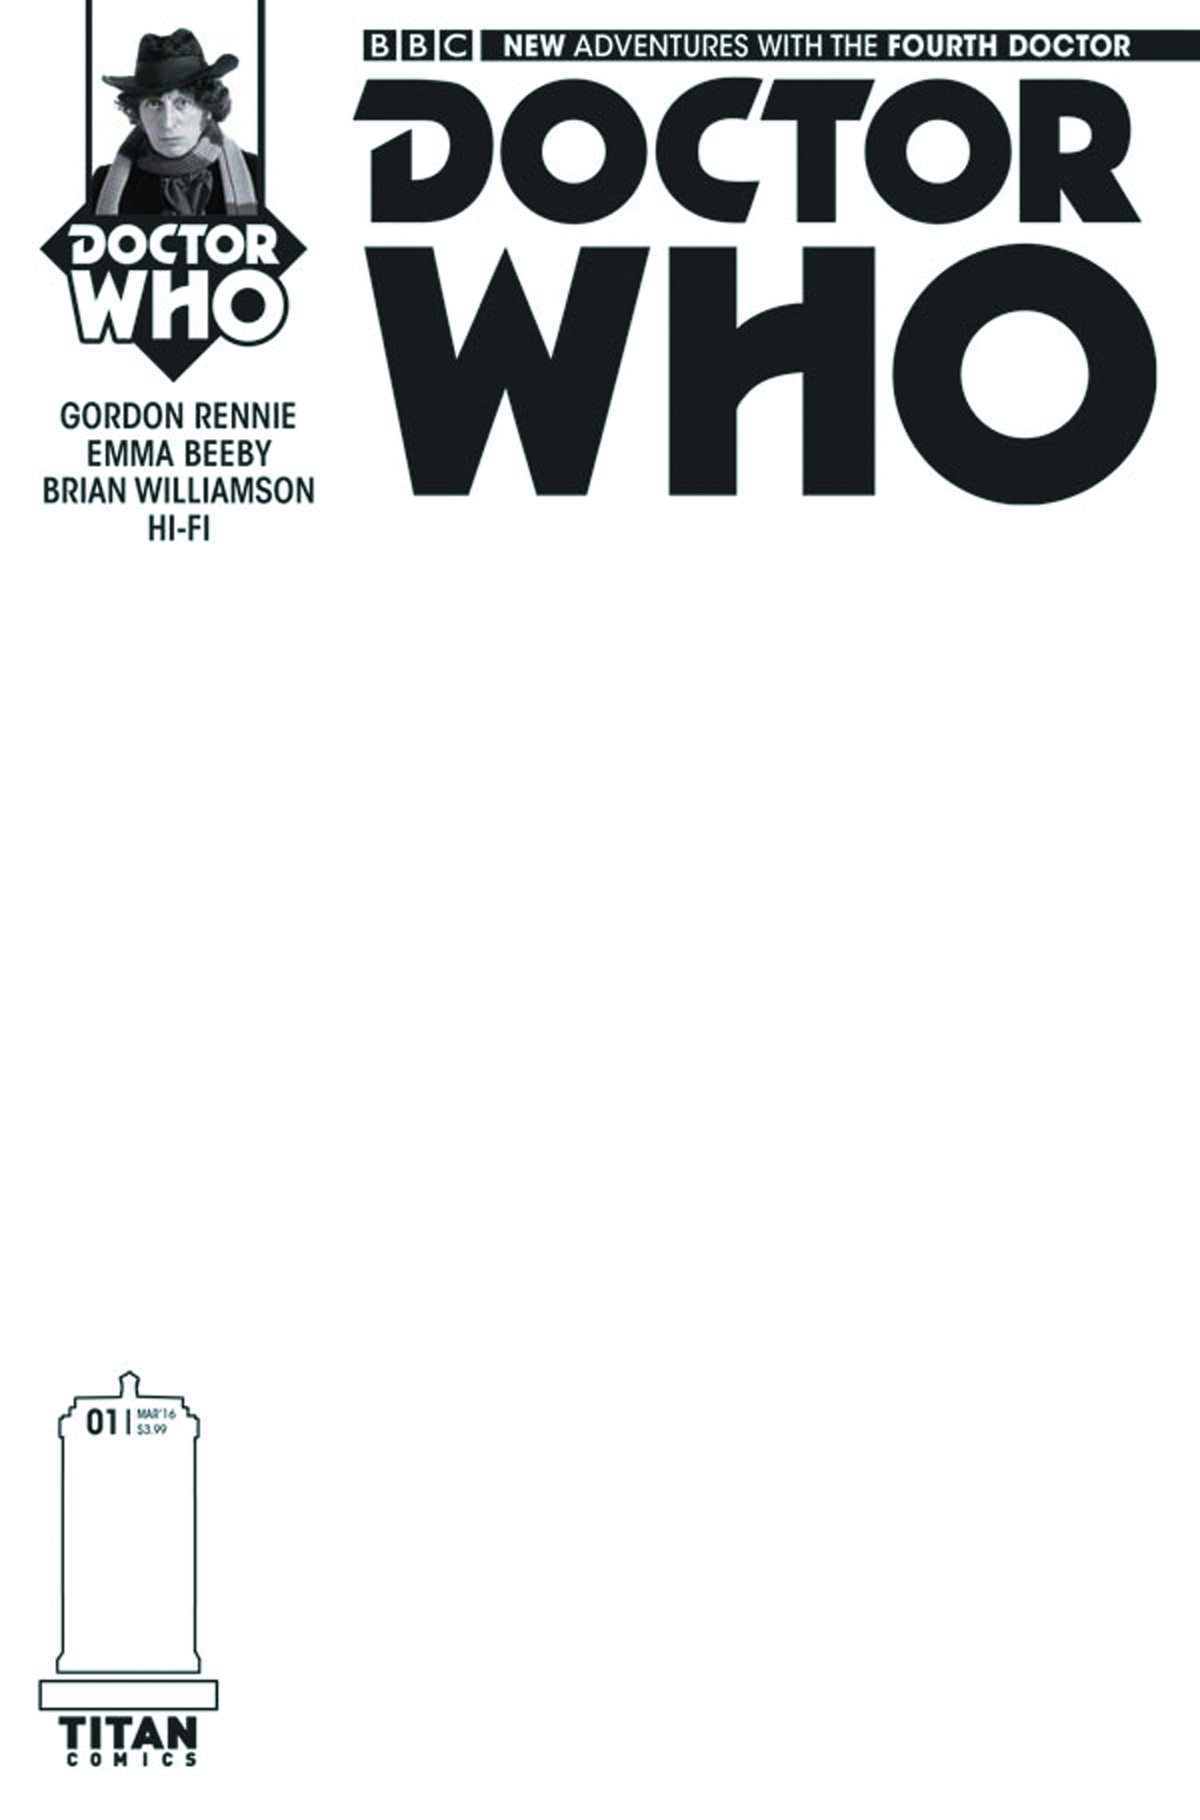 DOCTOR WHO 4TH #1 (OF 5) CVR D BLANK SKETCH